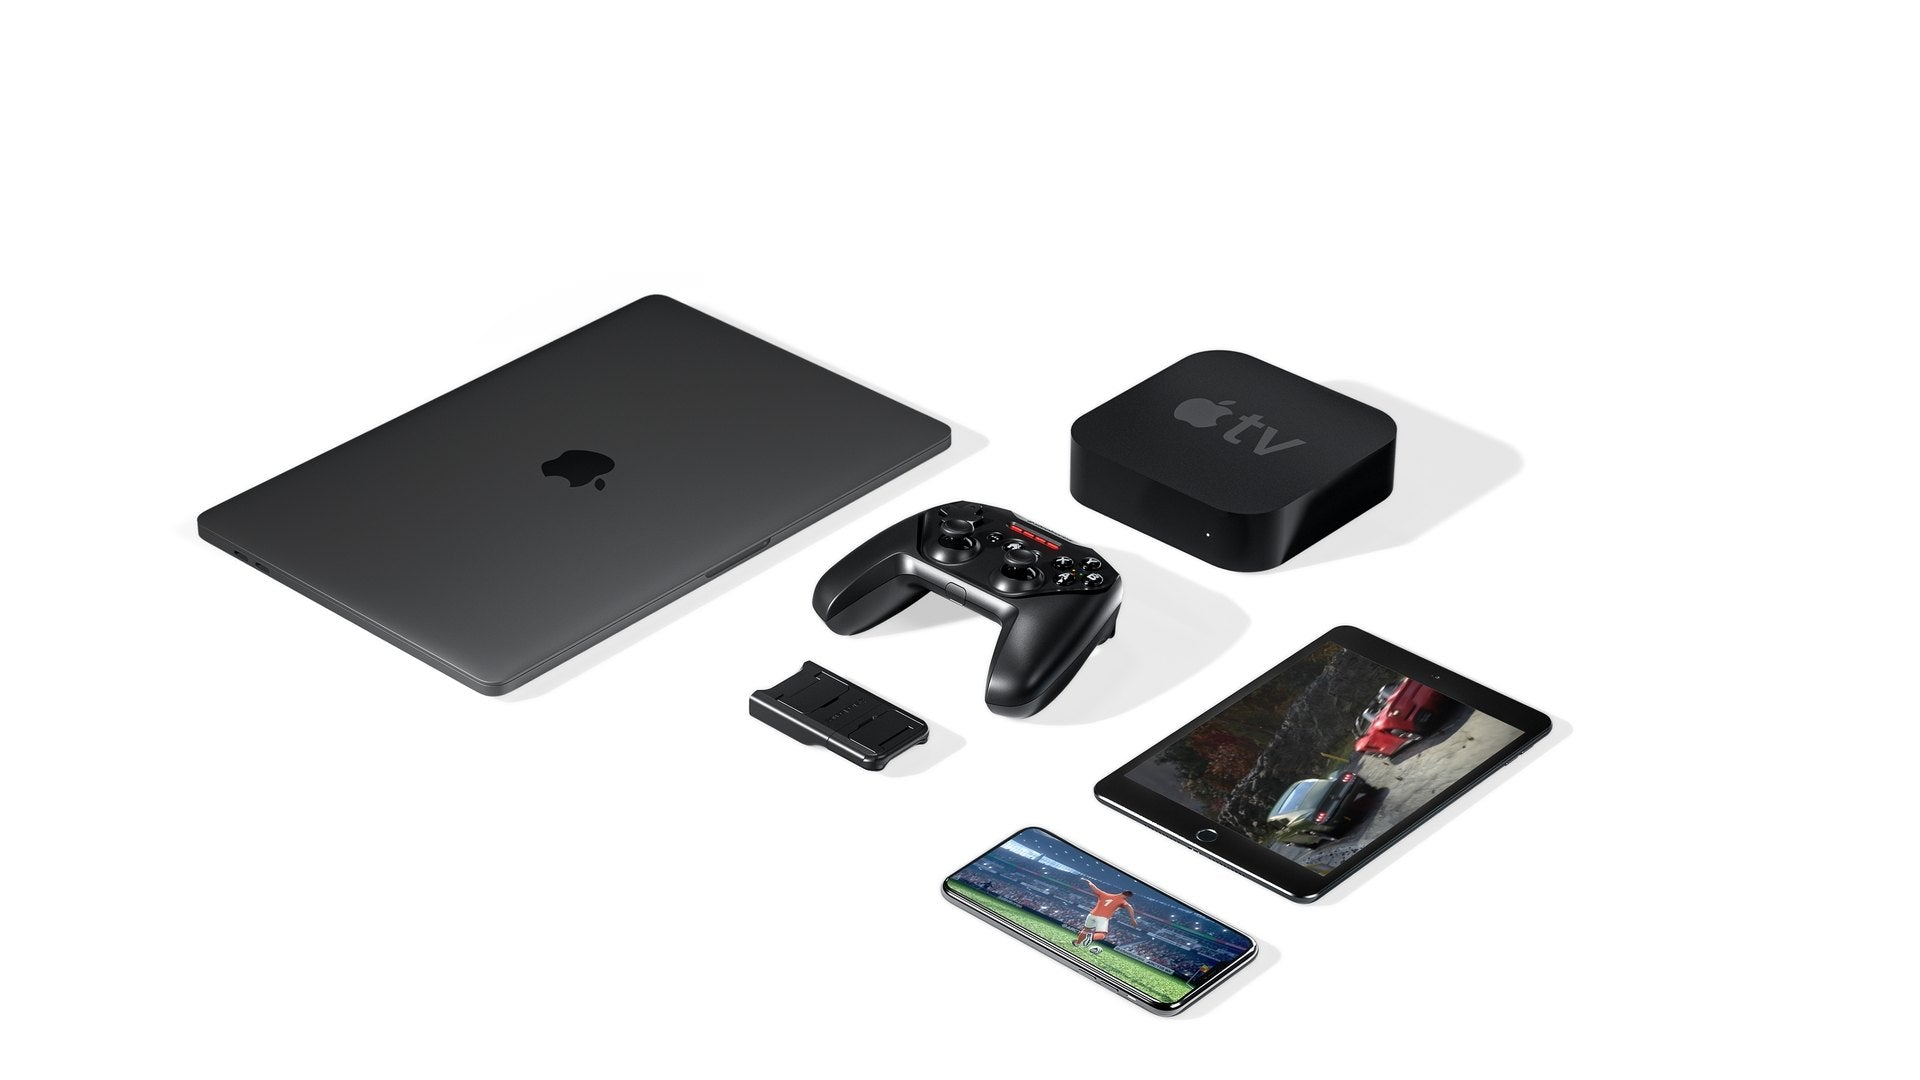 Official Apple-licensed Wireless Connectivity Works flawlessly with any Apple products, including iPhone, iPad, iPod and Apple TV.